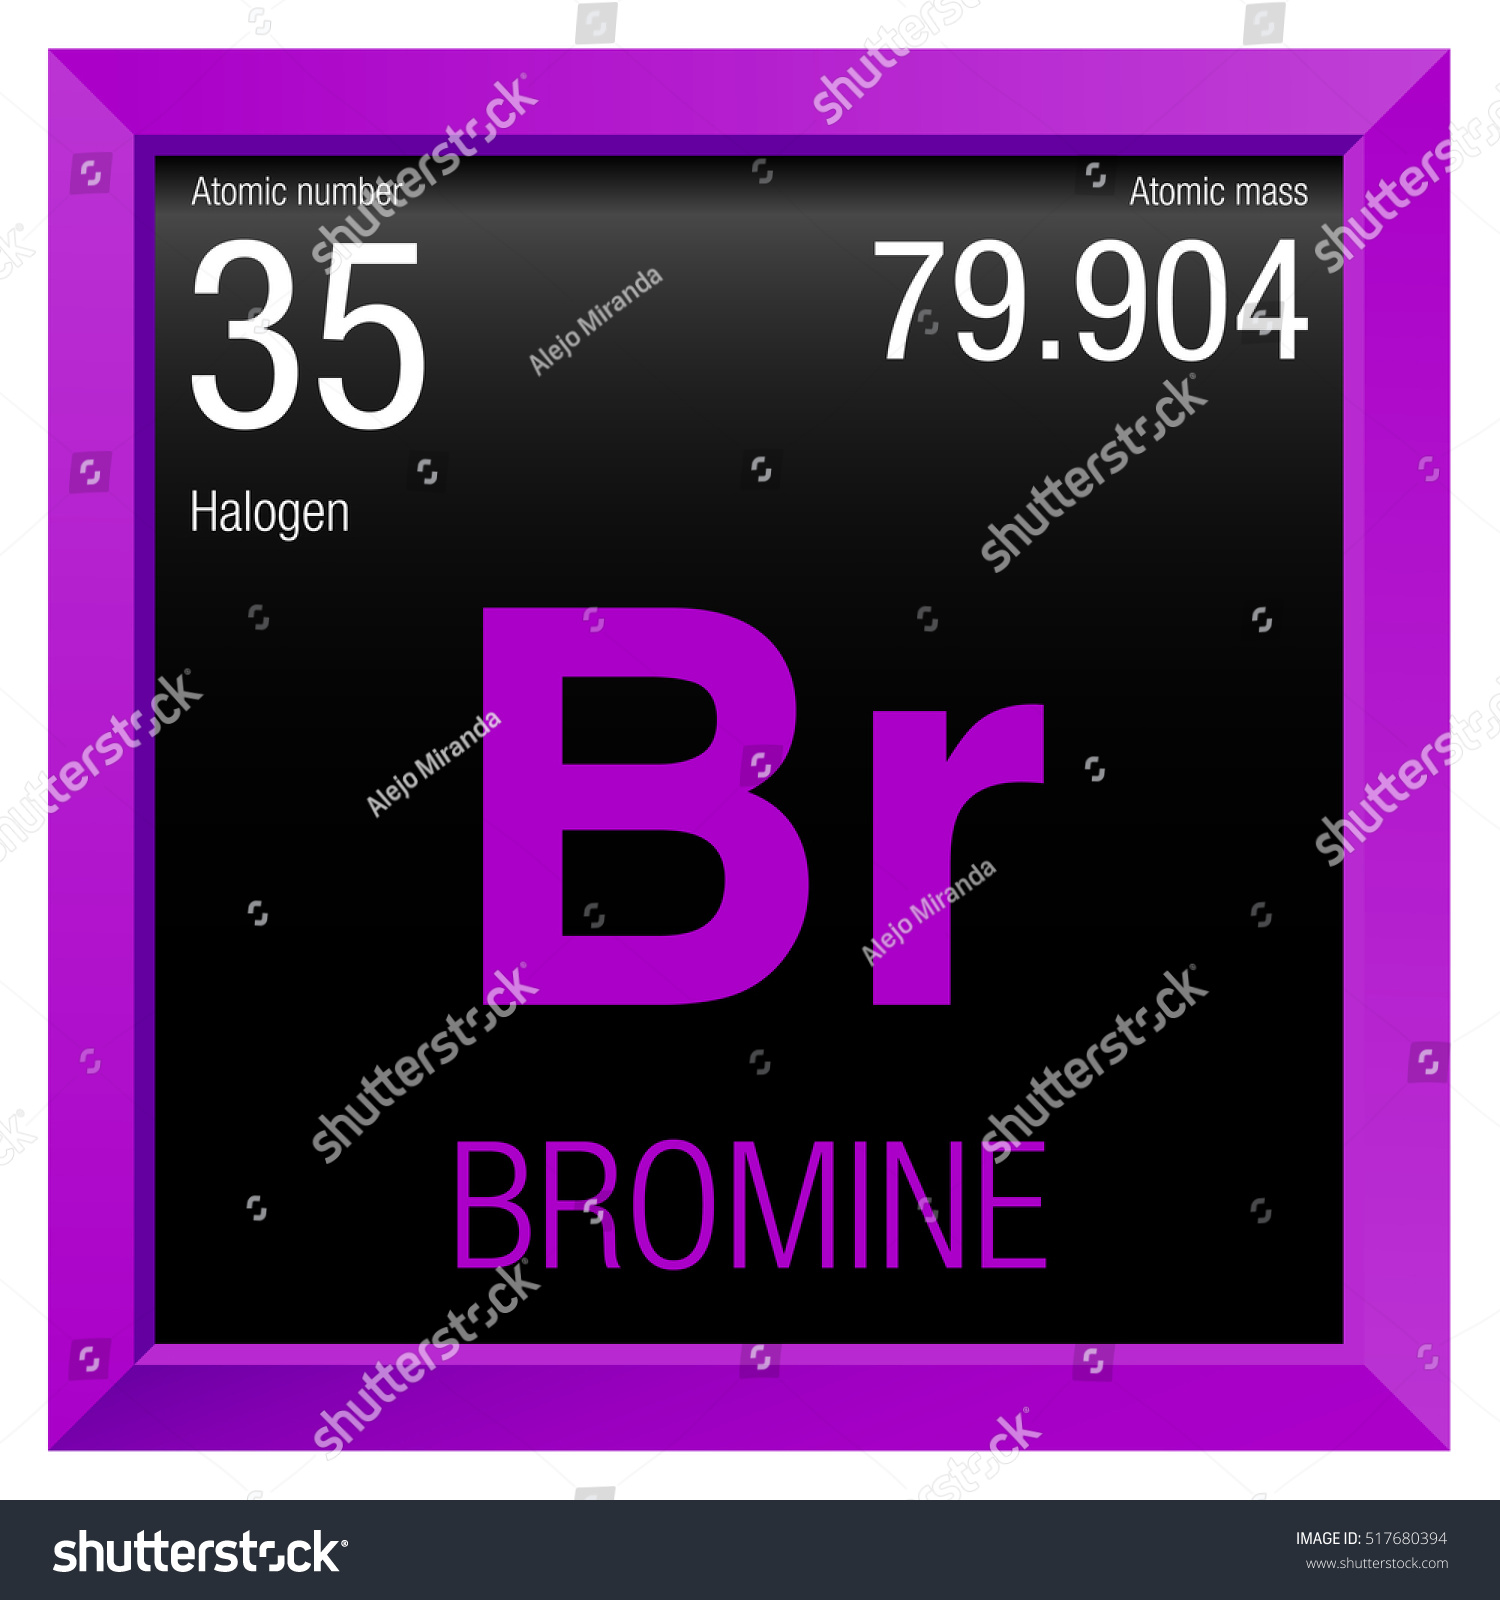 35 element periodic table image collections periodic table images bromine symbol element number 35 periodic stock vector 517680394 element number 35 of the periodic table gamestrikefo Images